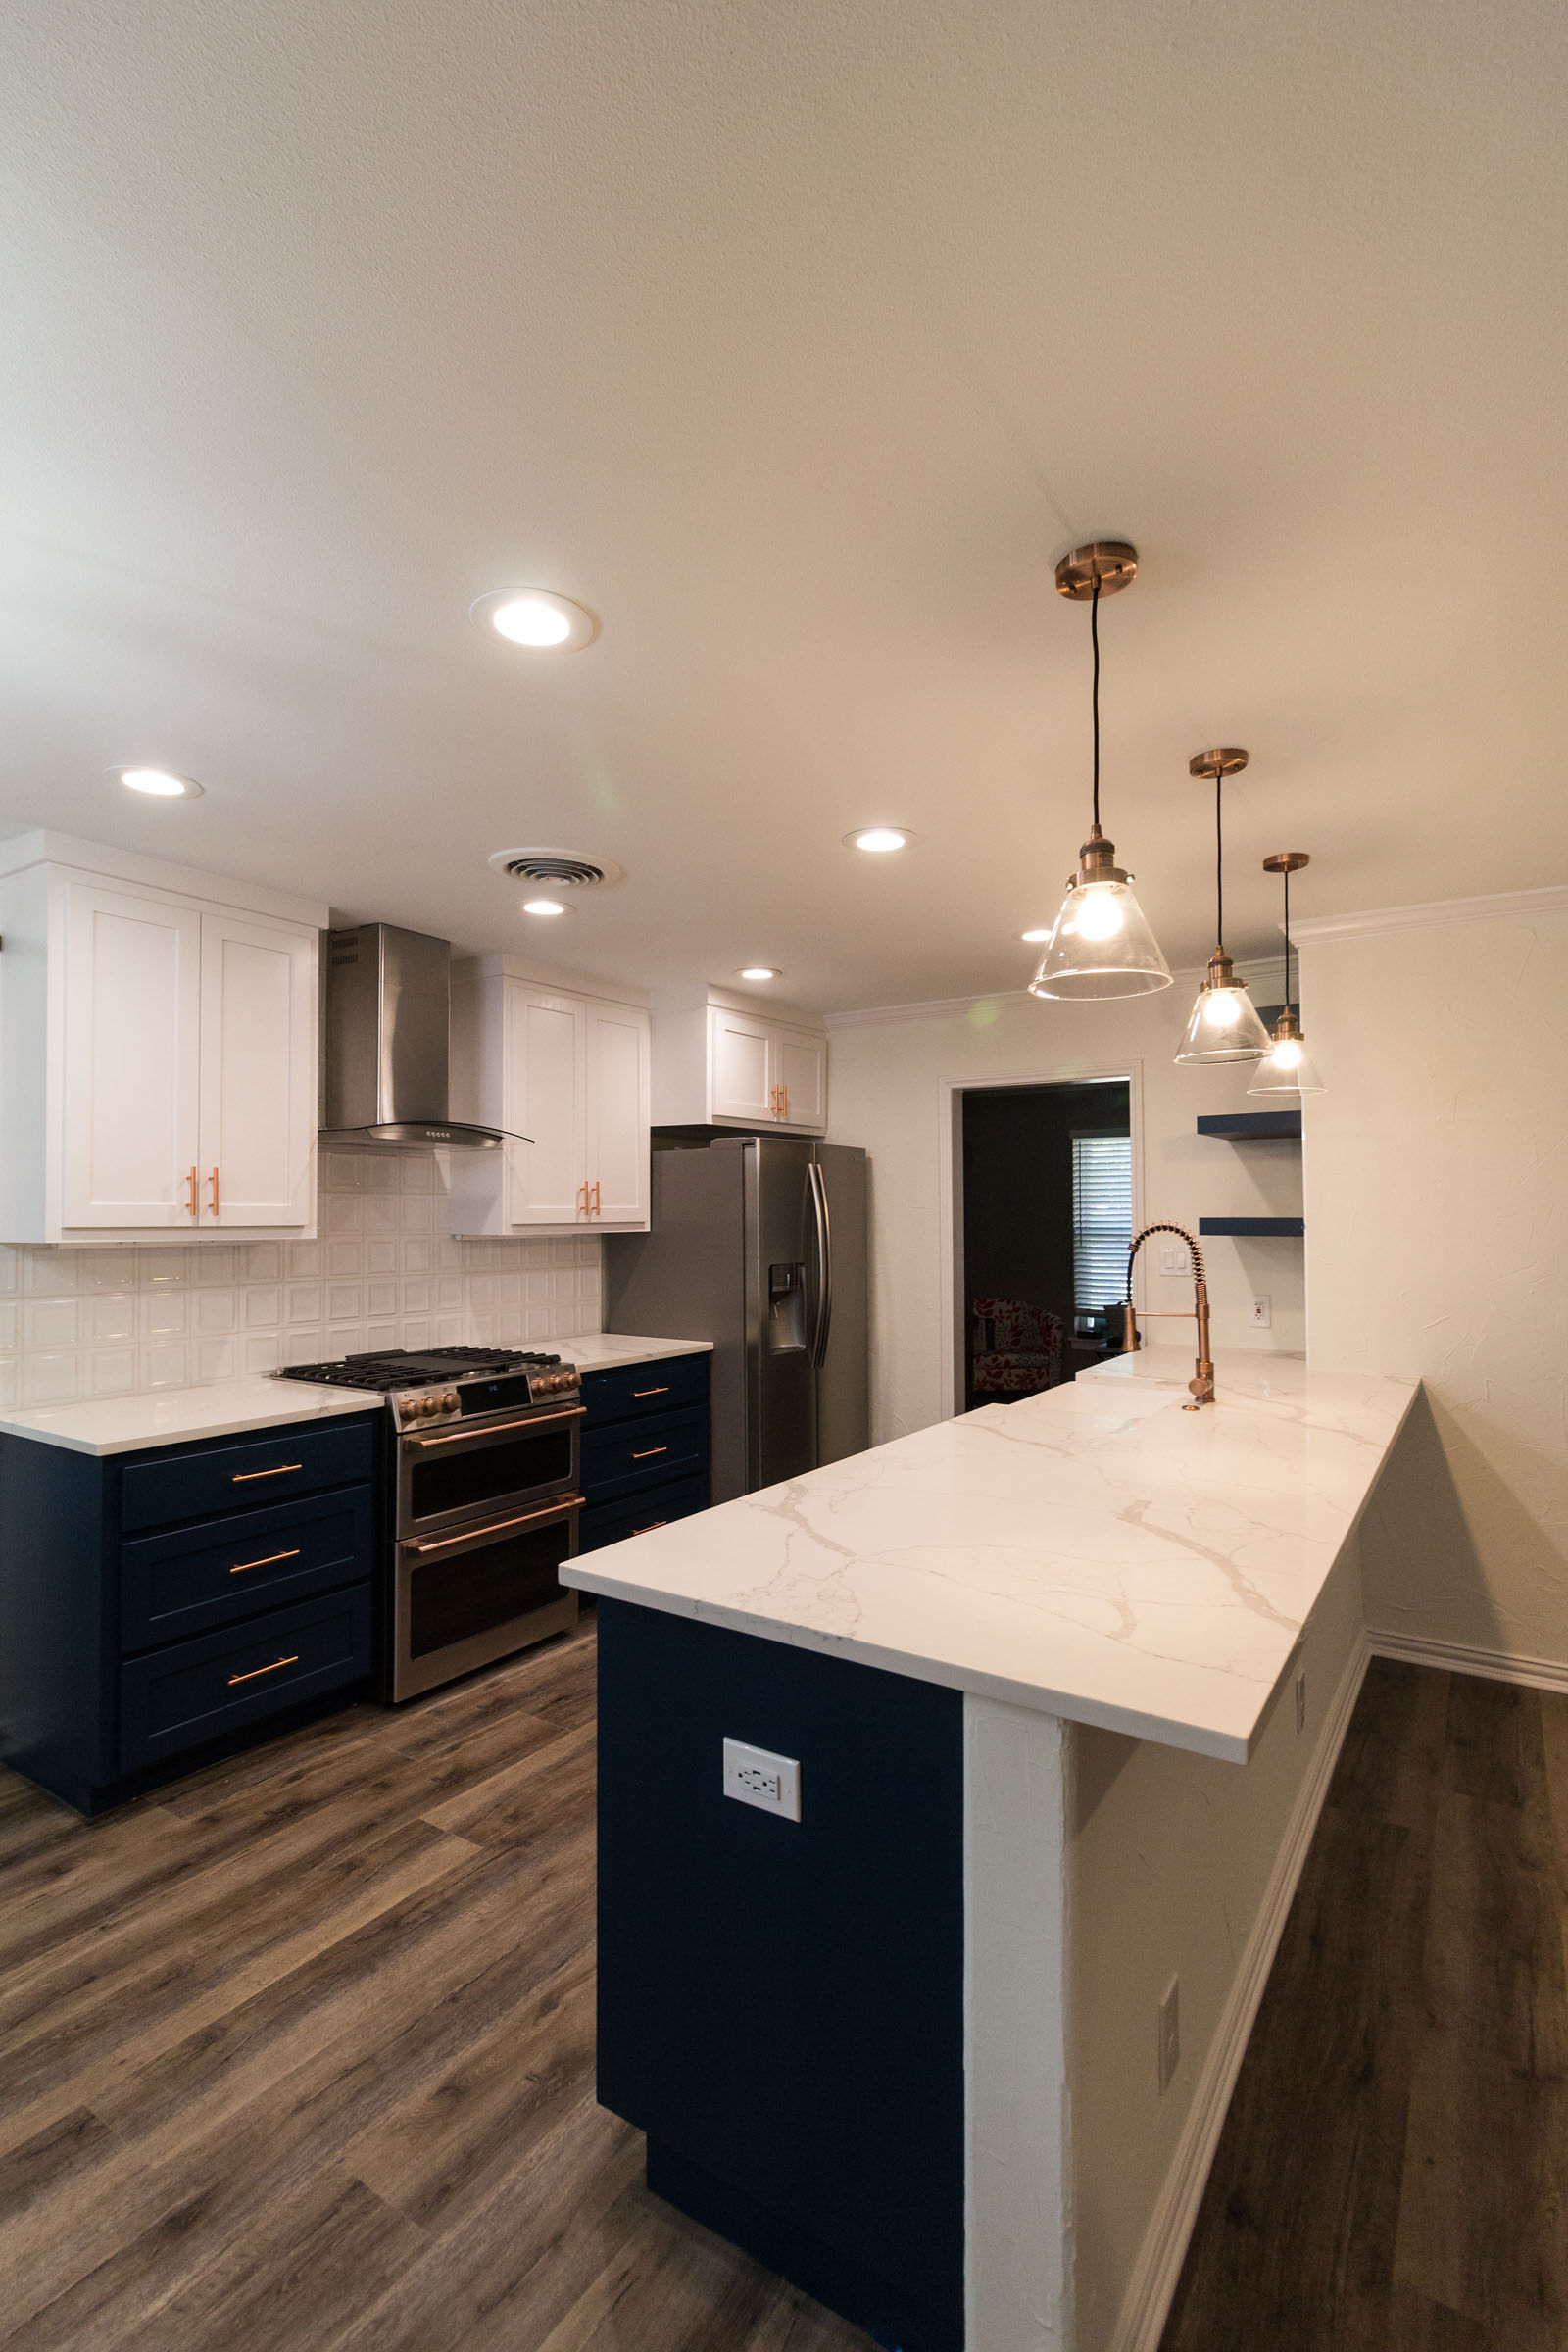 Navy and copper kitchen remodel with spacious bar area